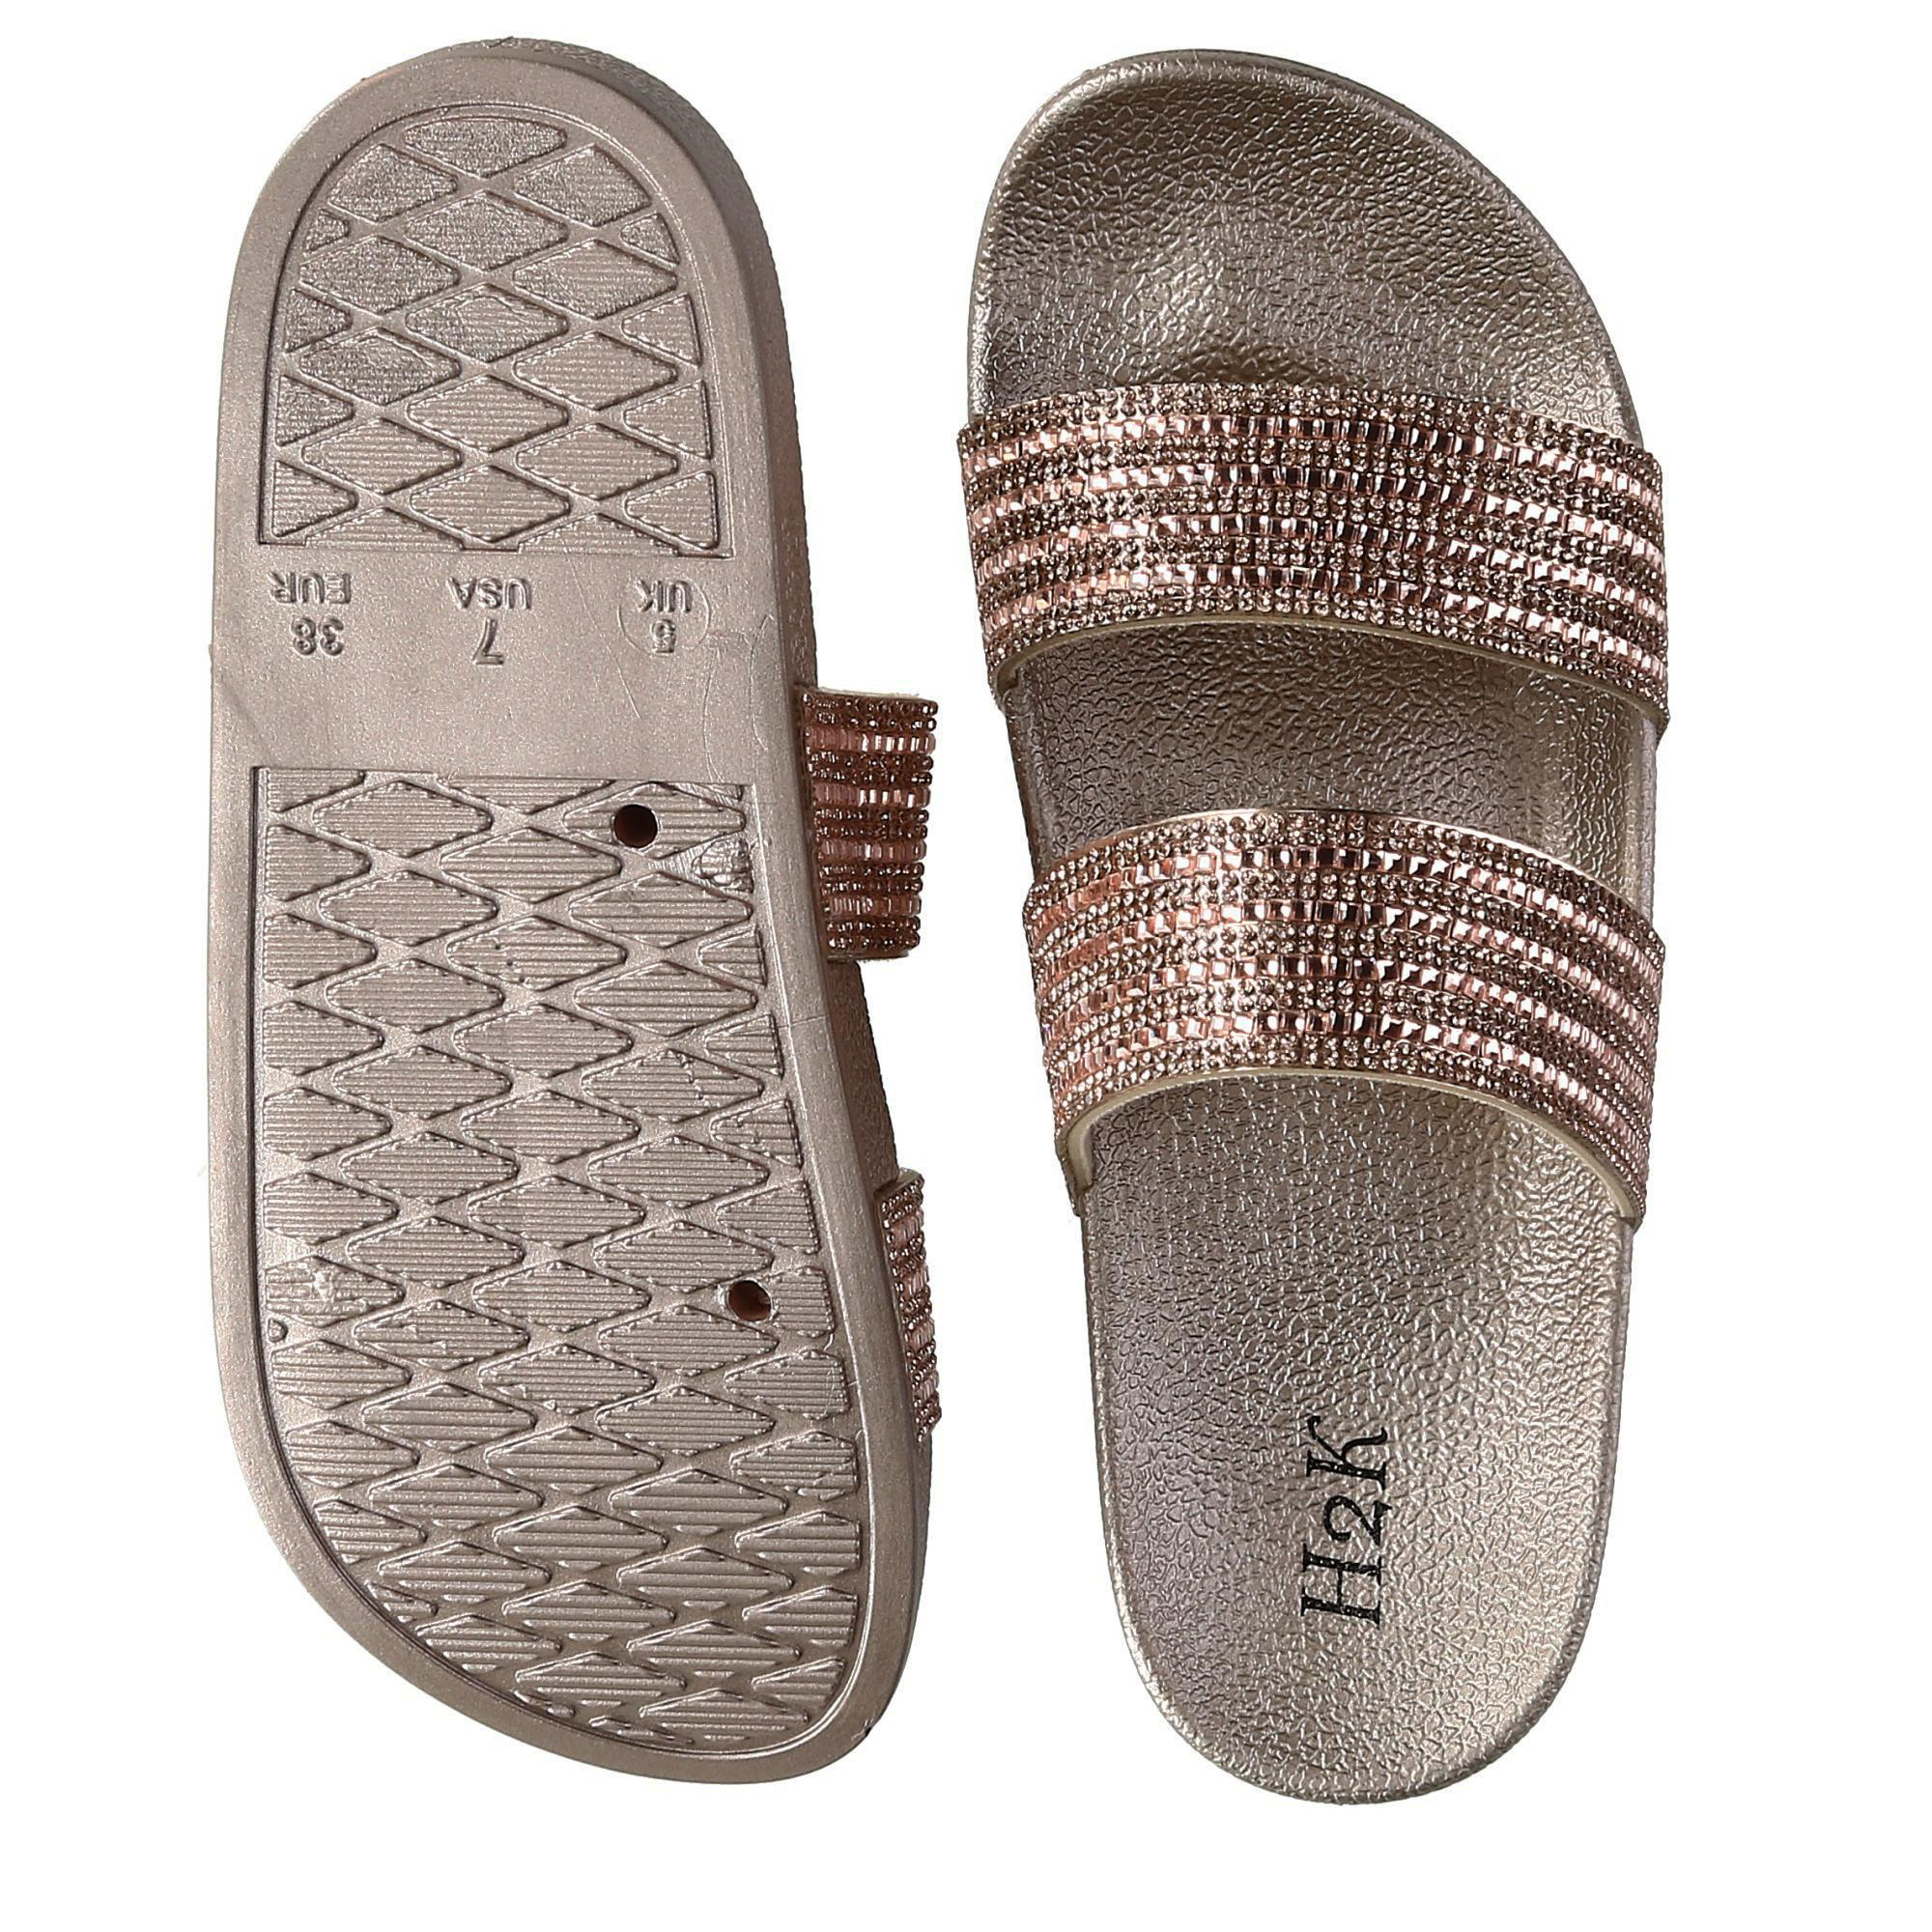 H2K Women's Fantasy Sparkle Slide Slipper - image 3 of 4